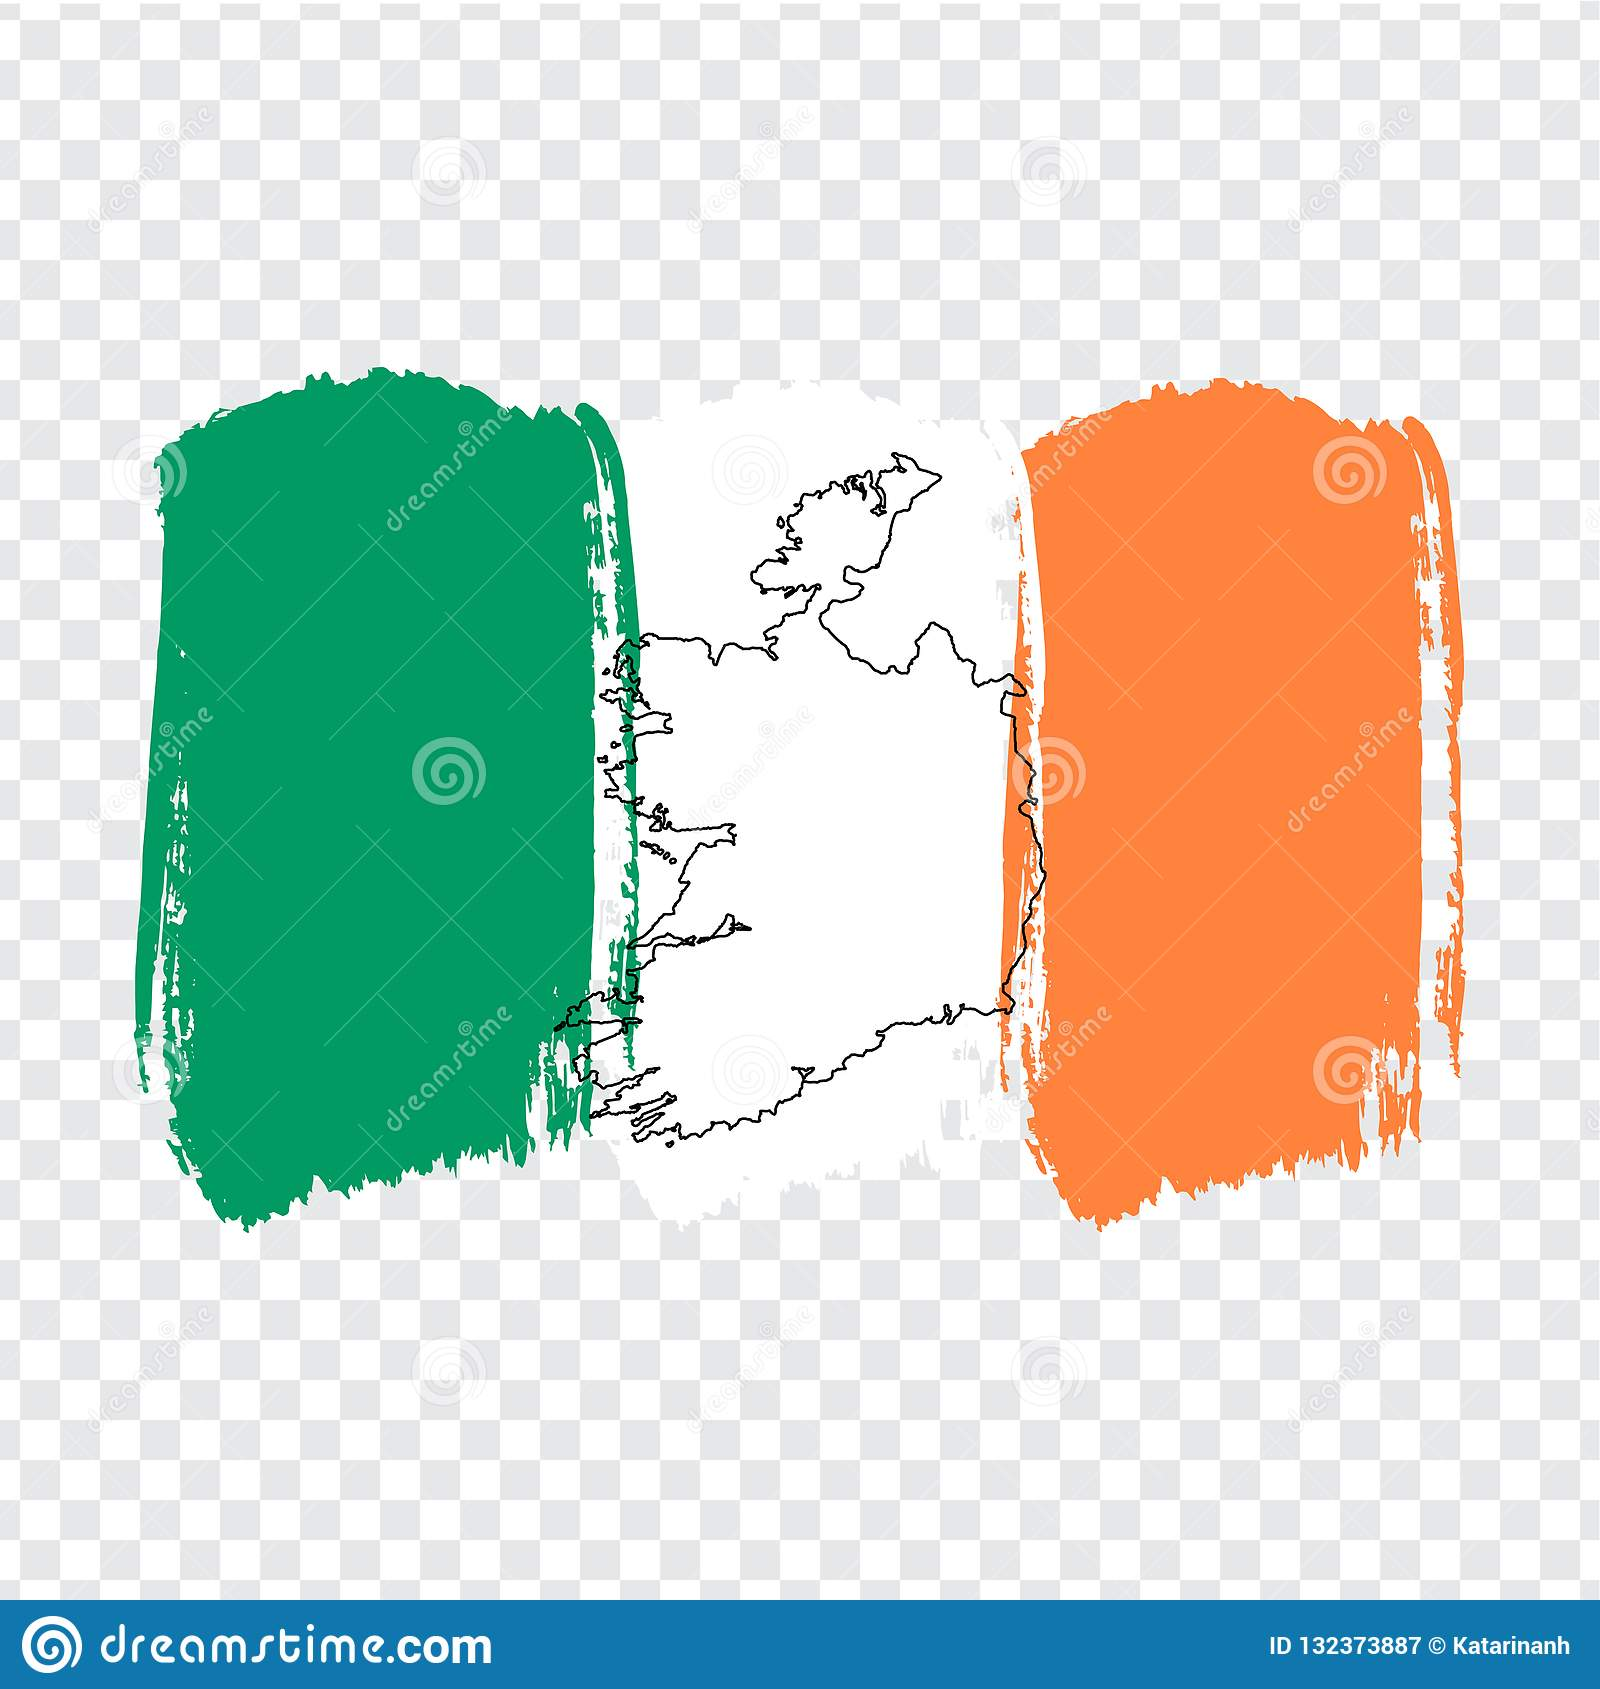 Blank Map Of Ireland.Flag Ireland From Brush Strokes And Blank Map Ireland High Quality